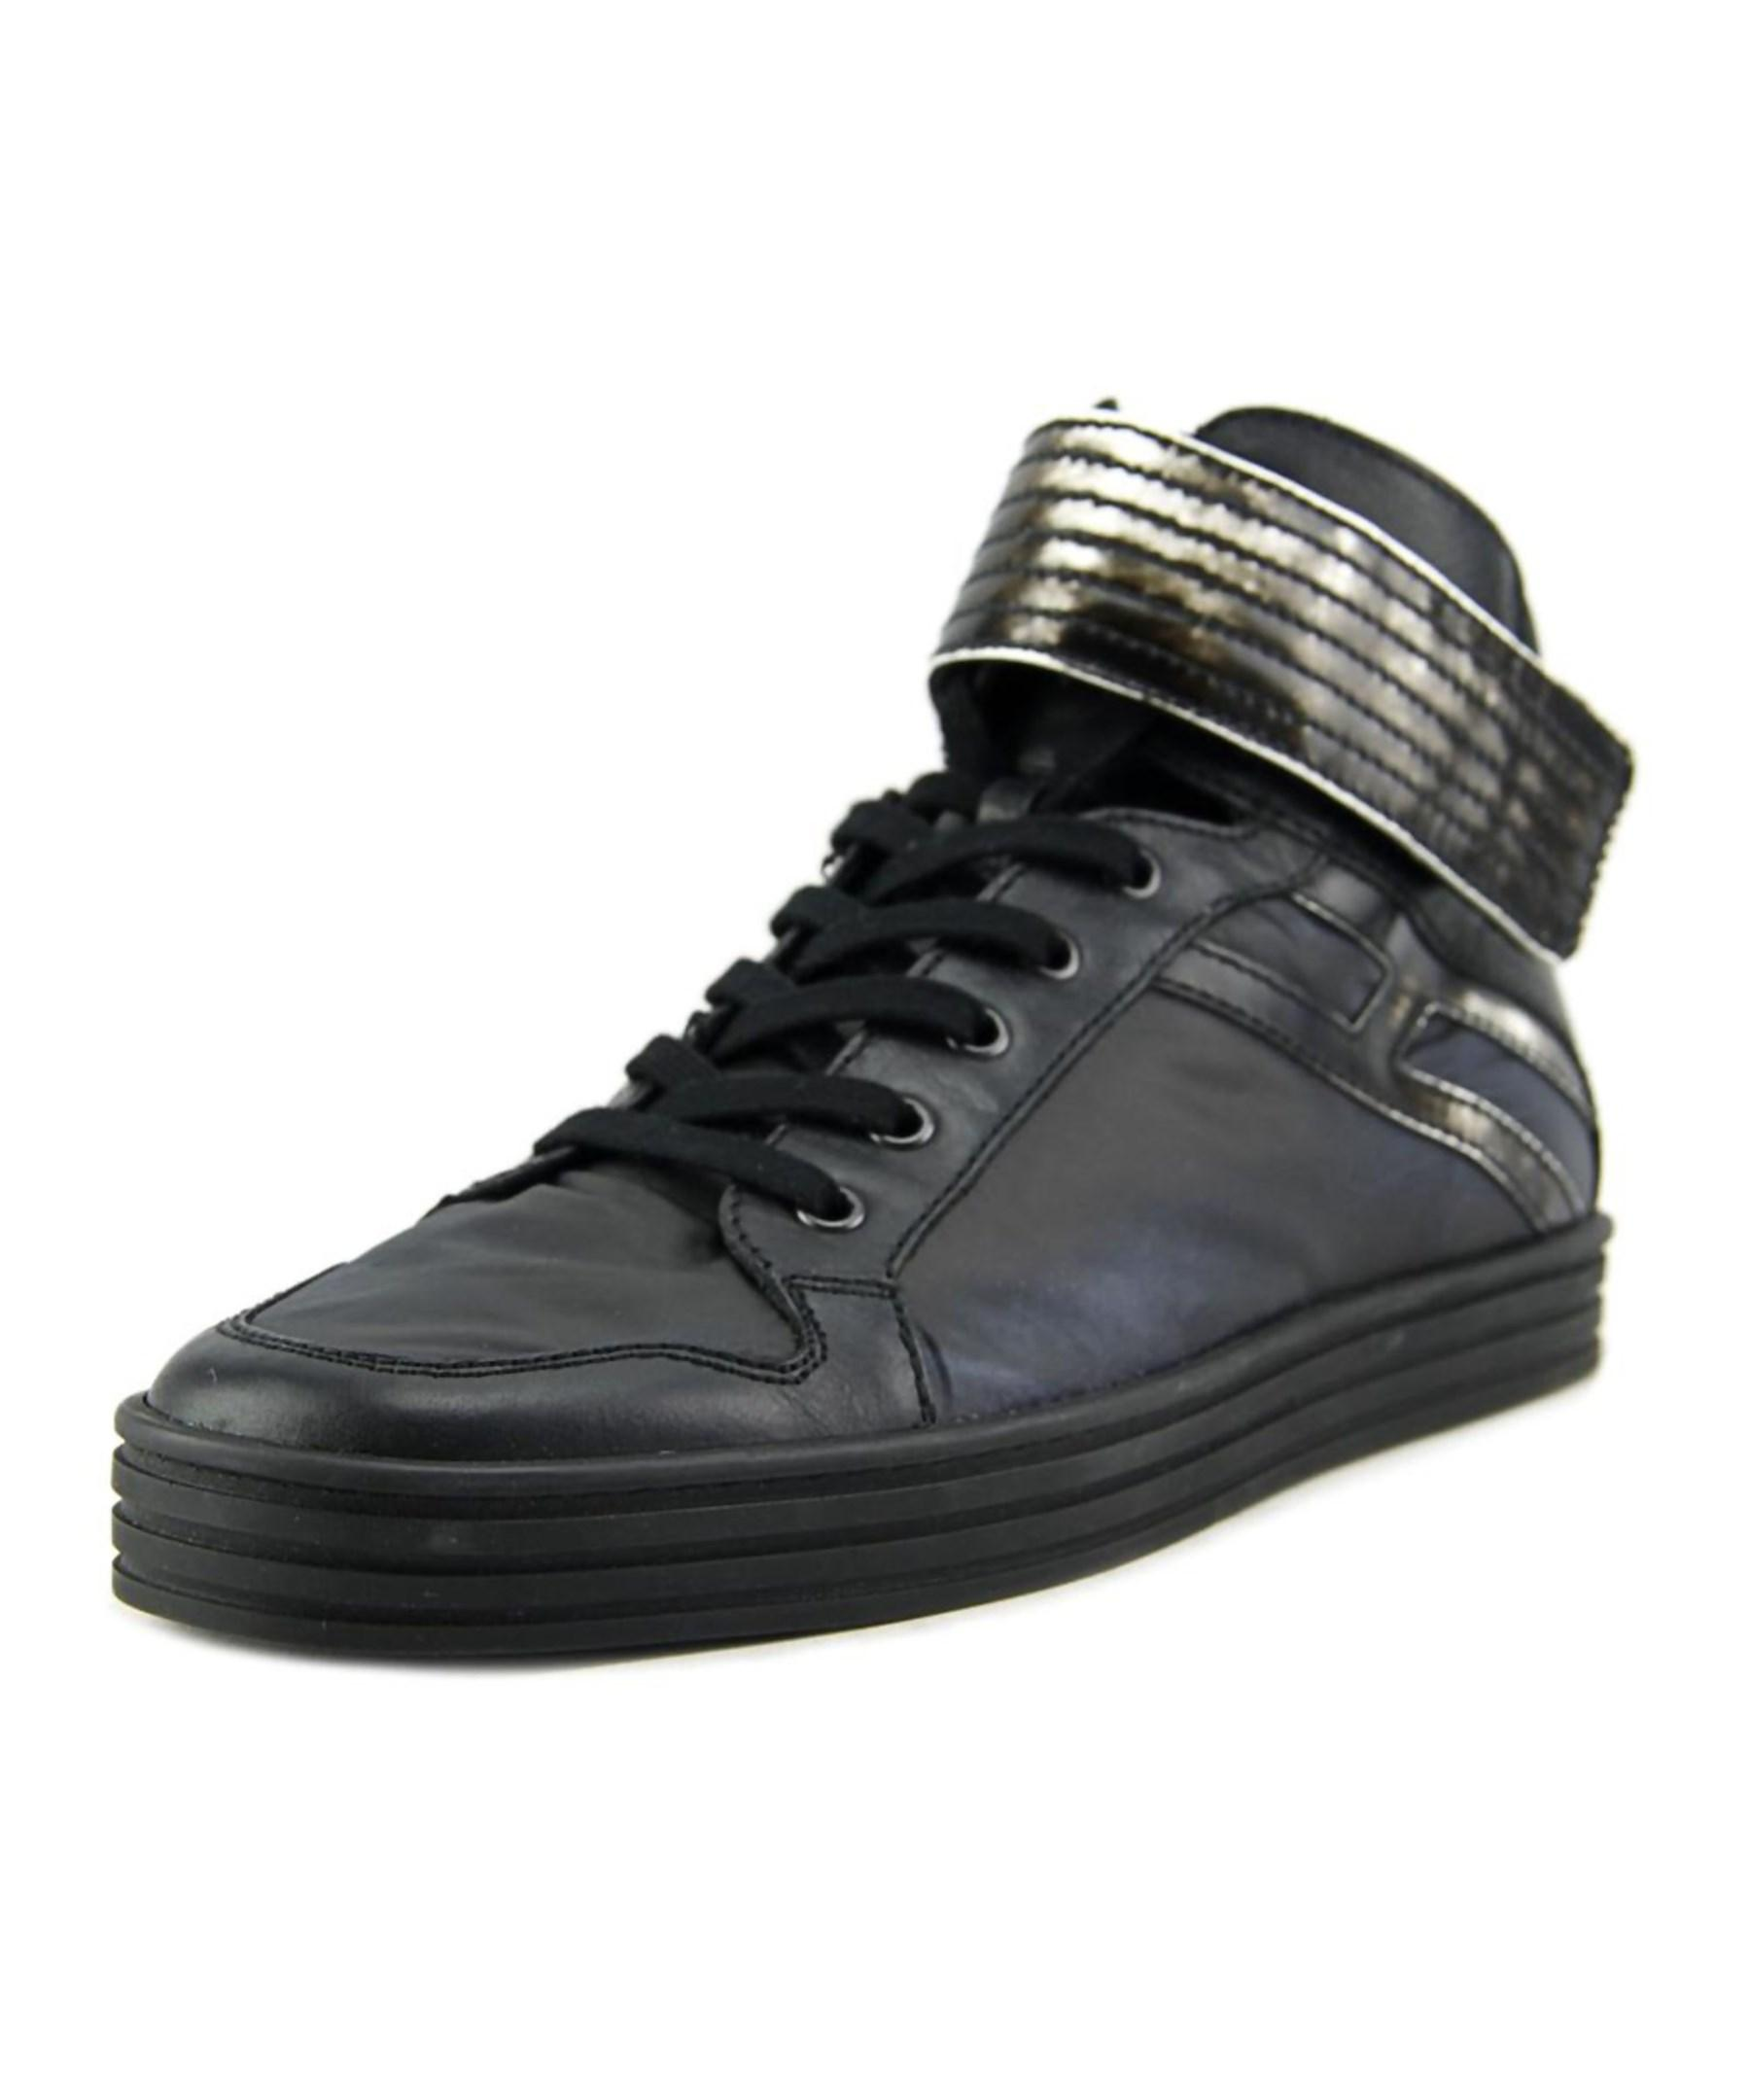 hogan r141 nuovo basket strap synthetic fashion sneakers in black for men lyst. Black Bedroom Furniture Sets. Home Design Ideas